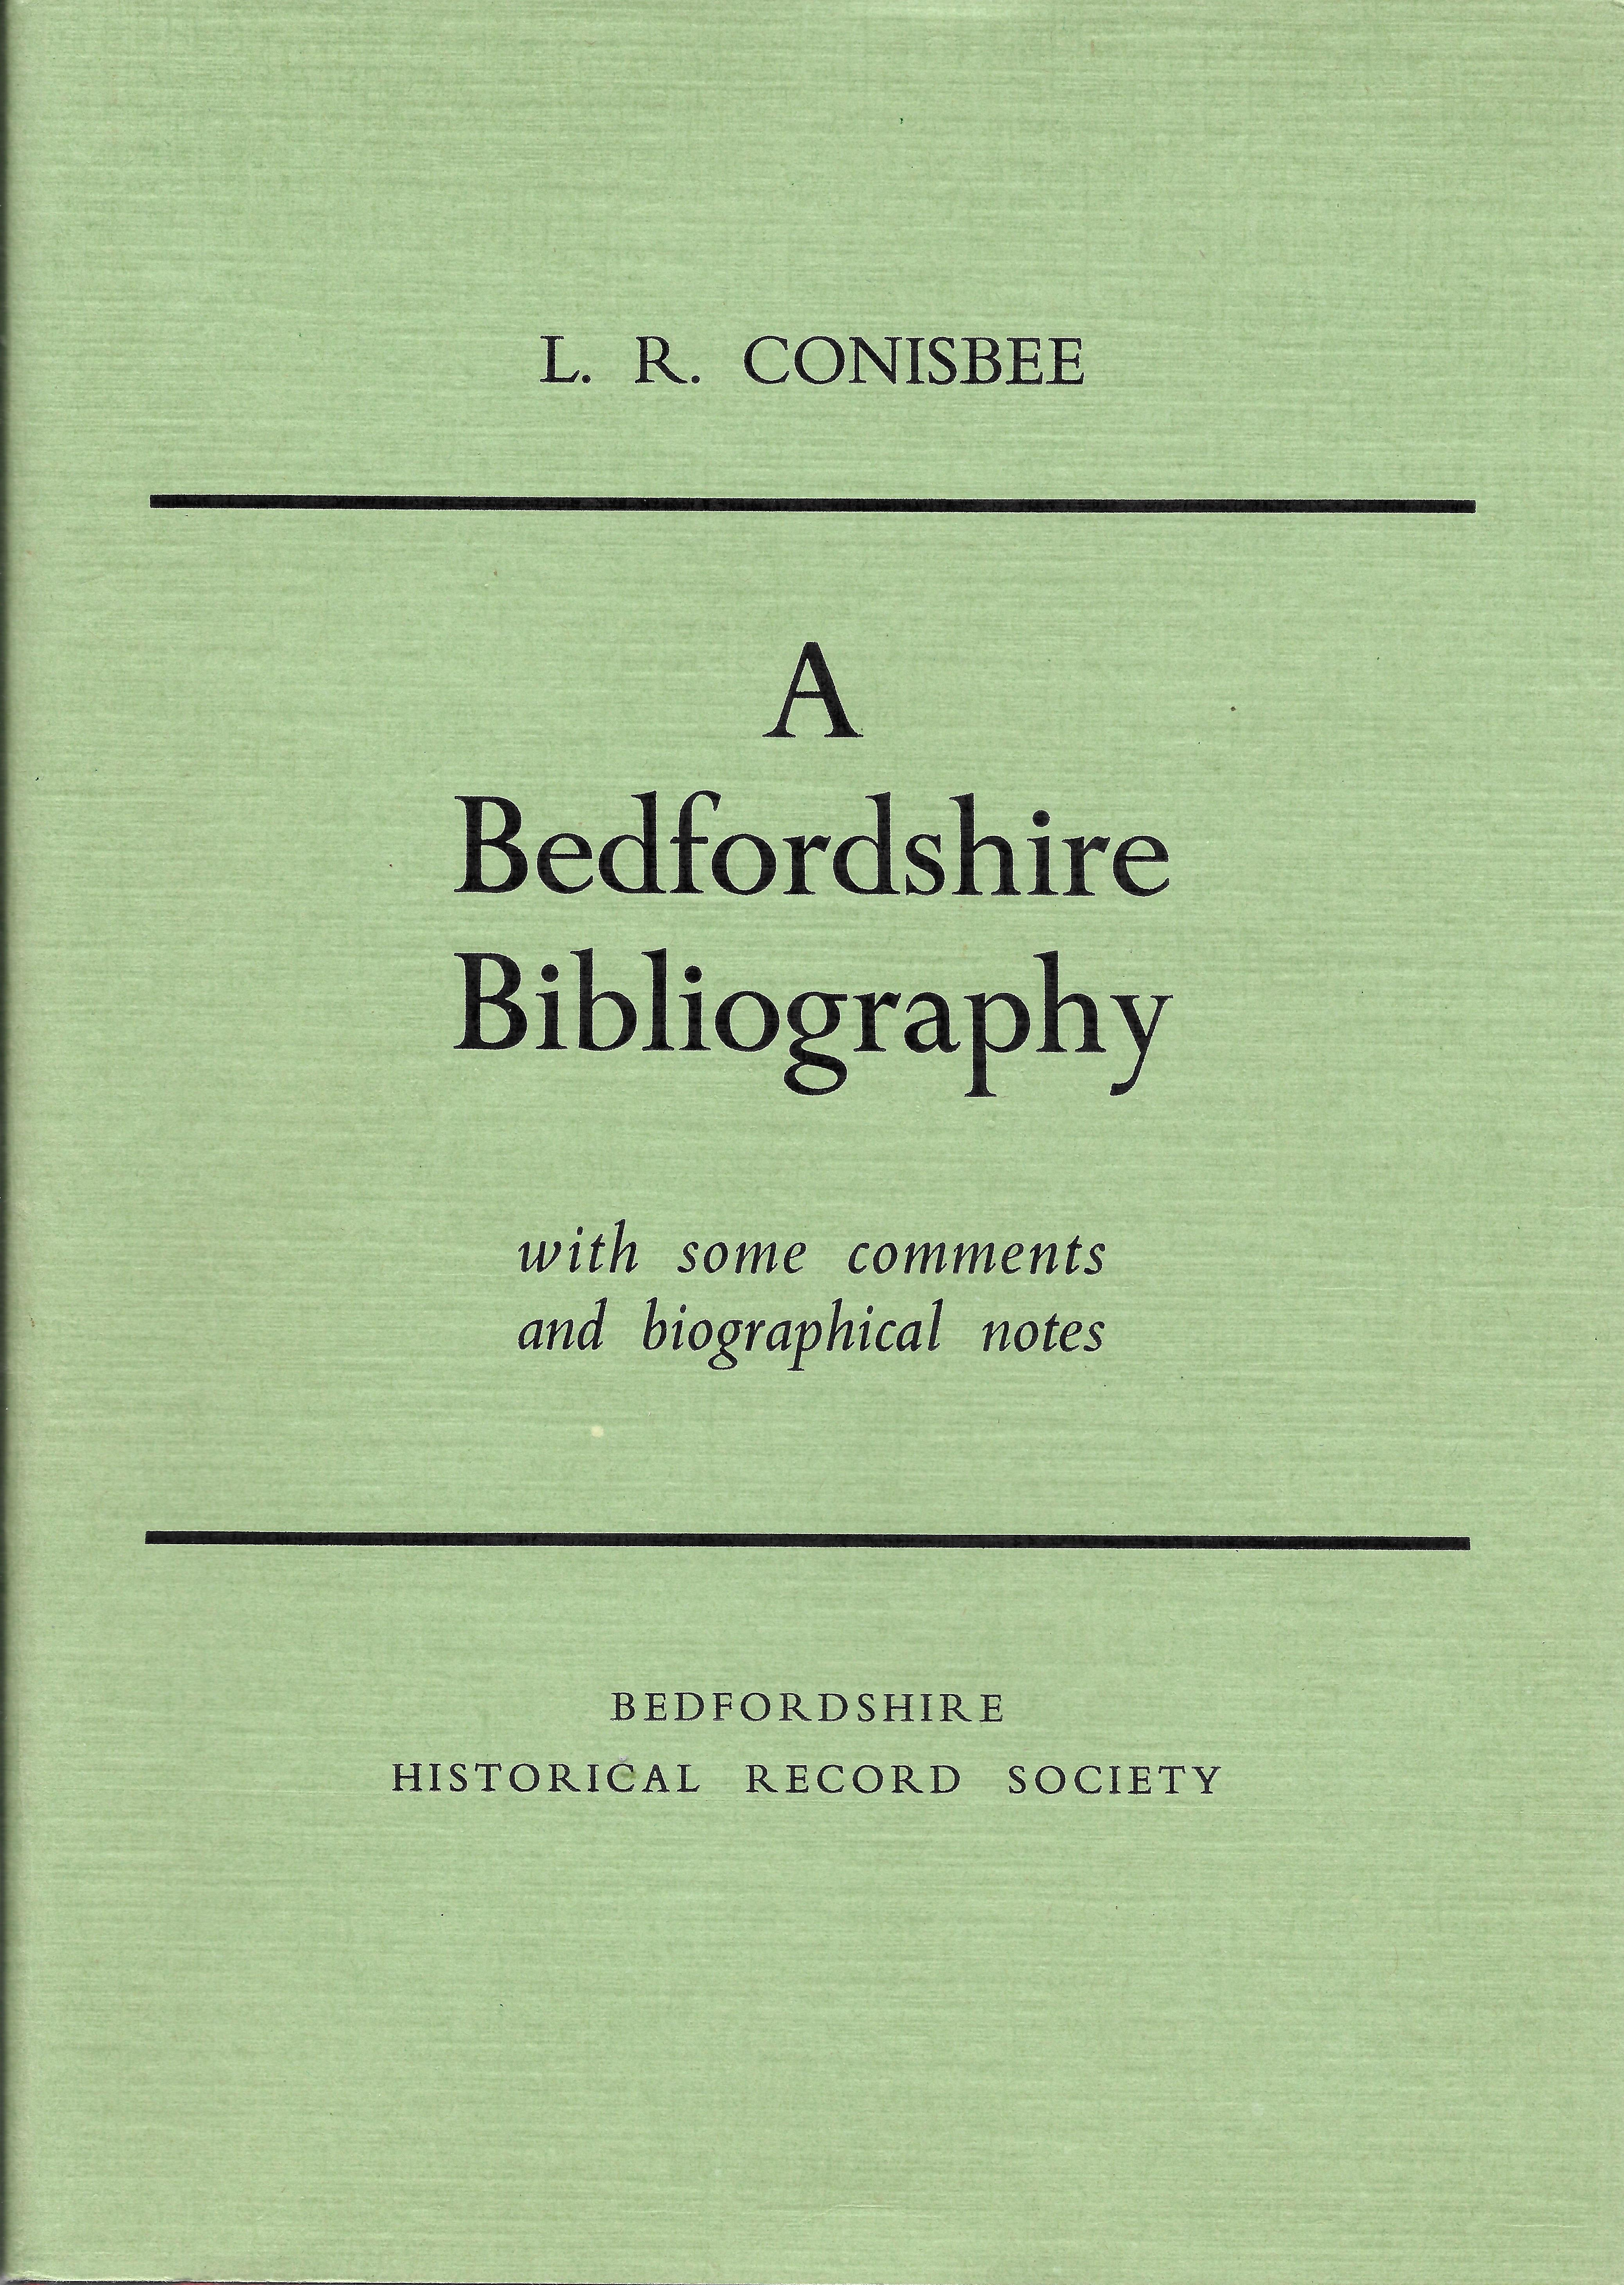 A Bedfordshire bibliography